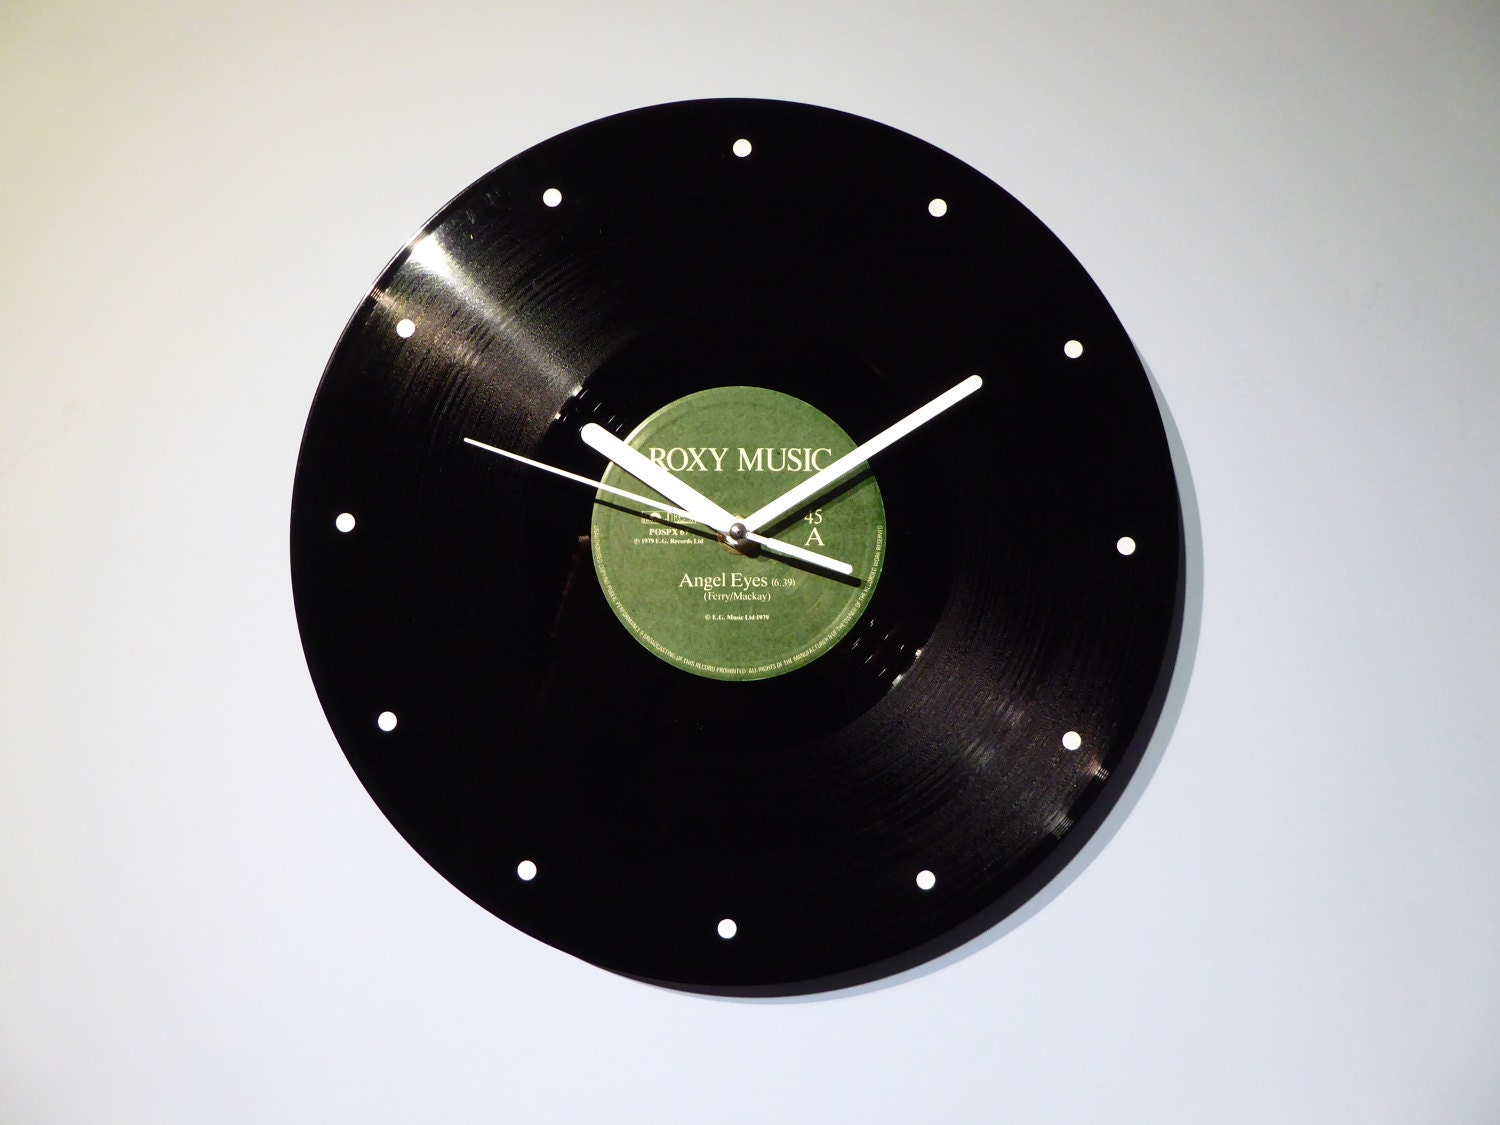 Roxy Music Vinyl Record Wall Clock